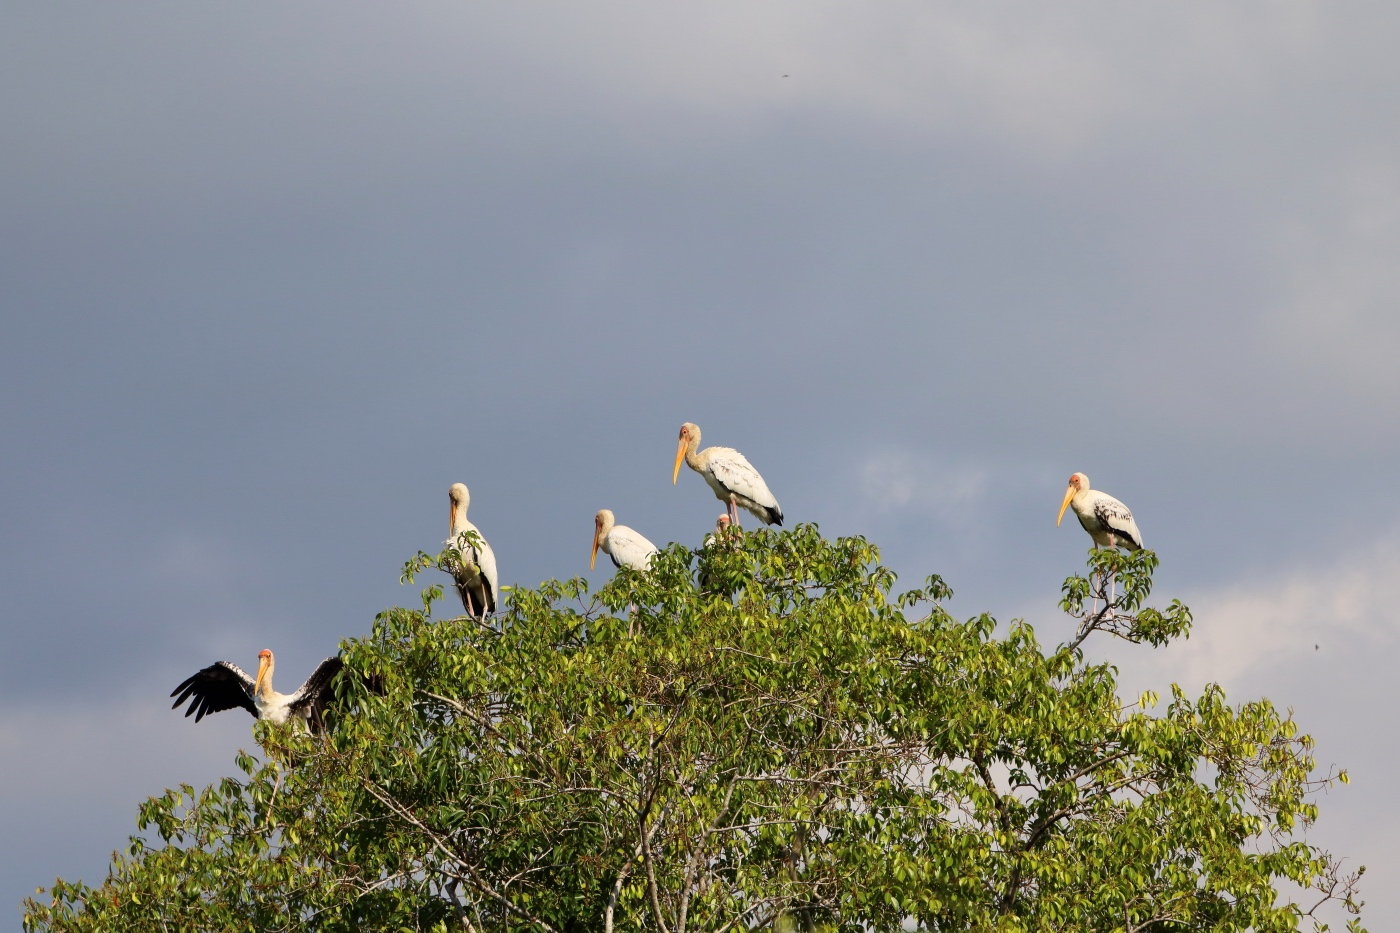 Milky storks standing atop mangrove trees in Sungei Buloh nature reserve, Singapore.